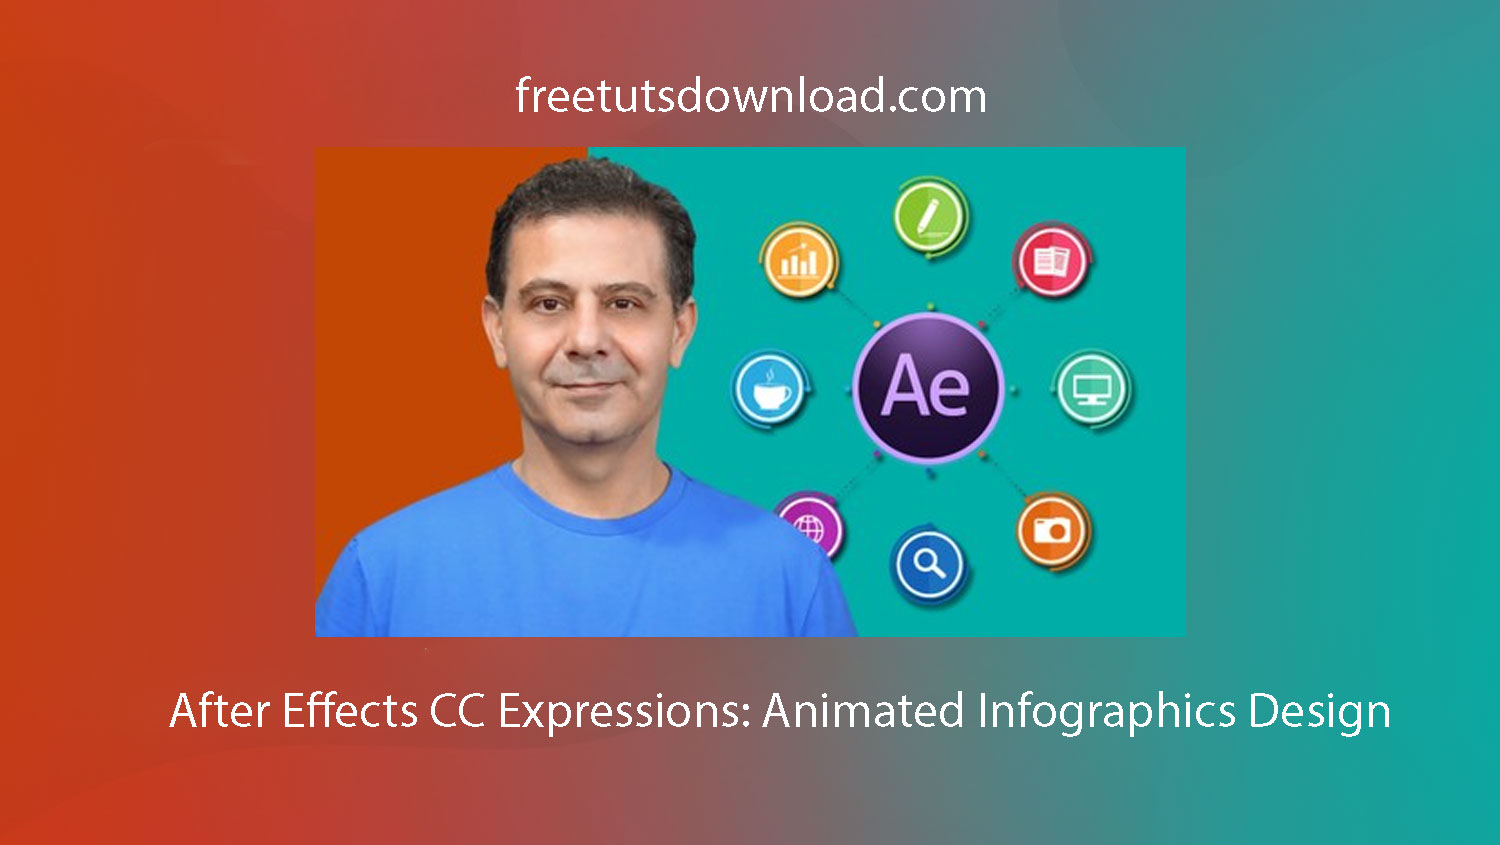 After Effects CC Expressions: Animated Infographics Design